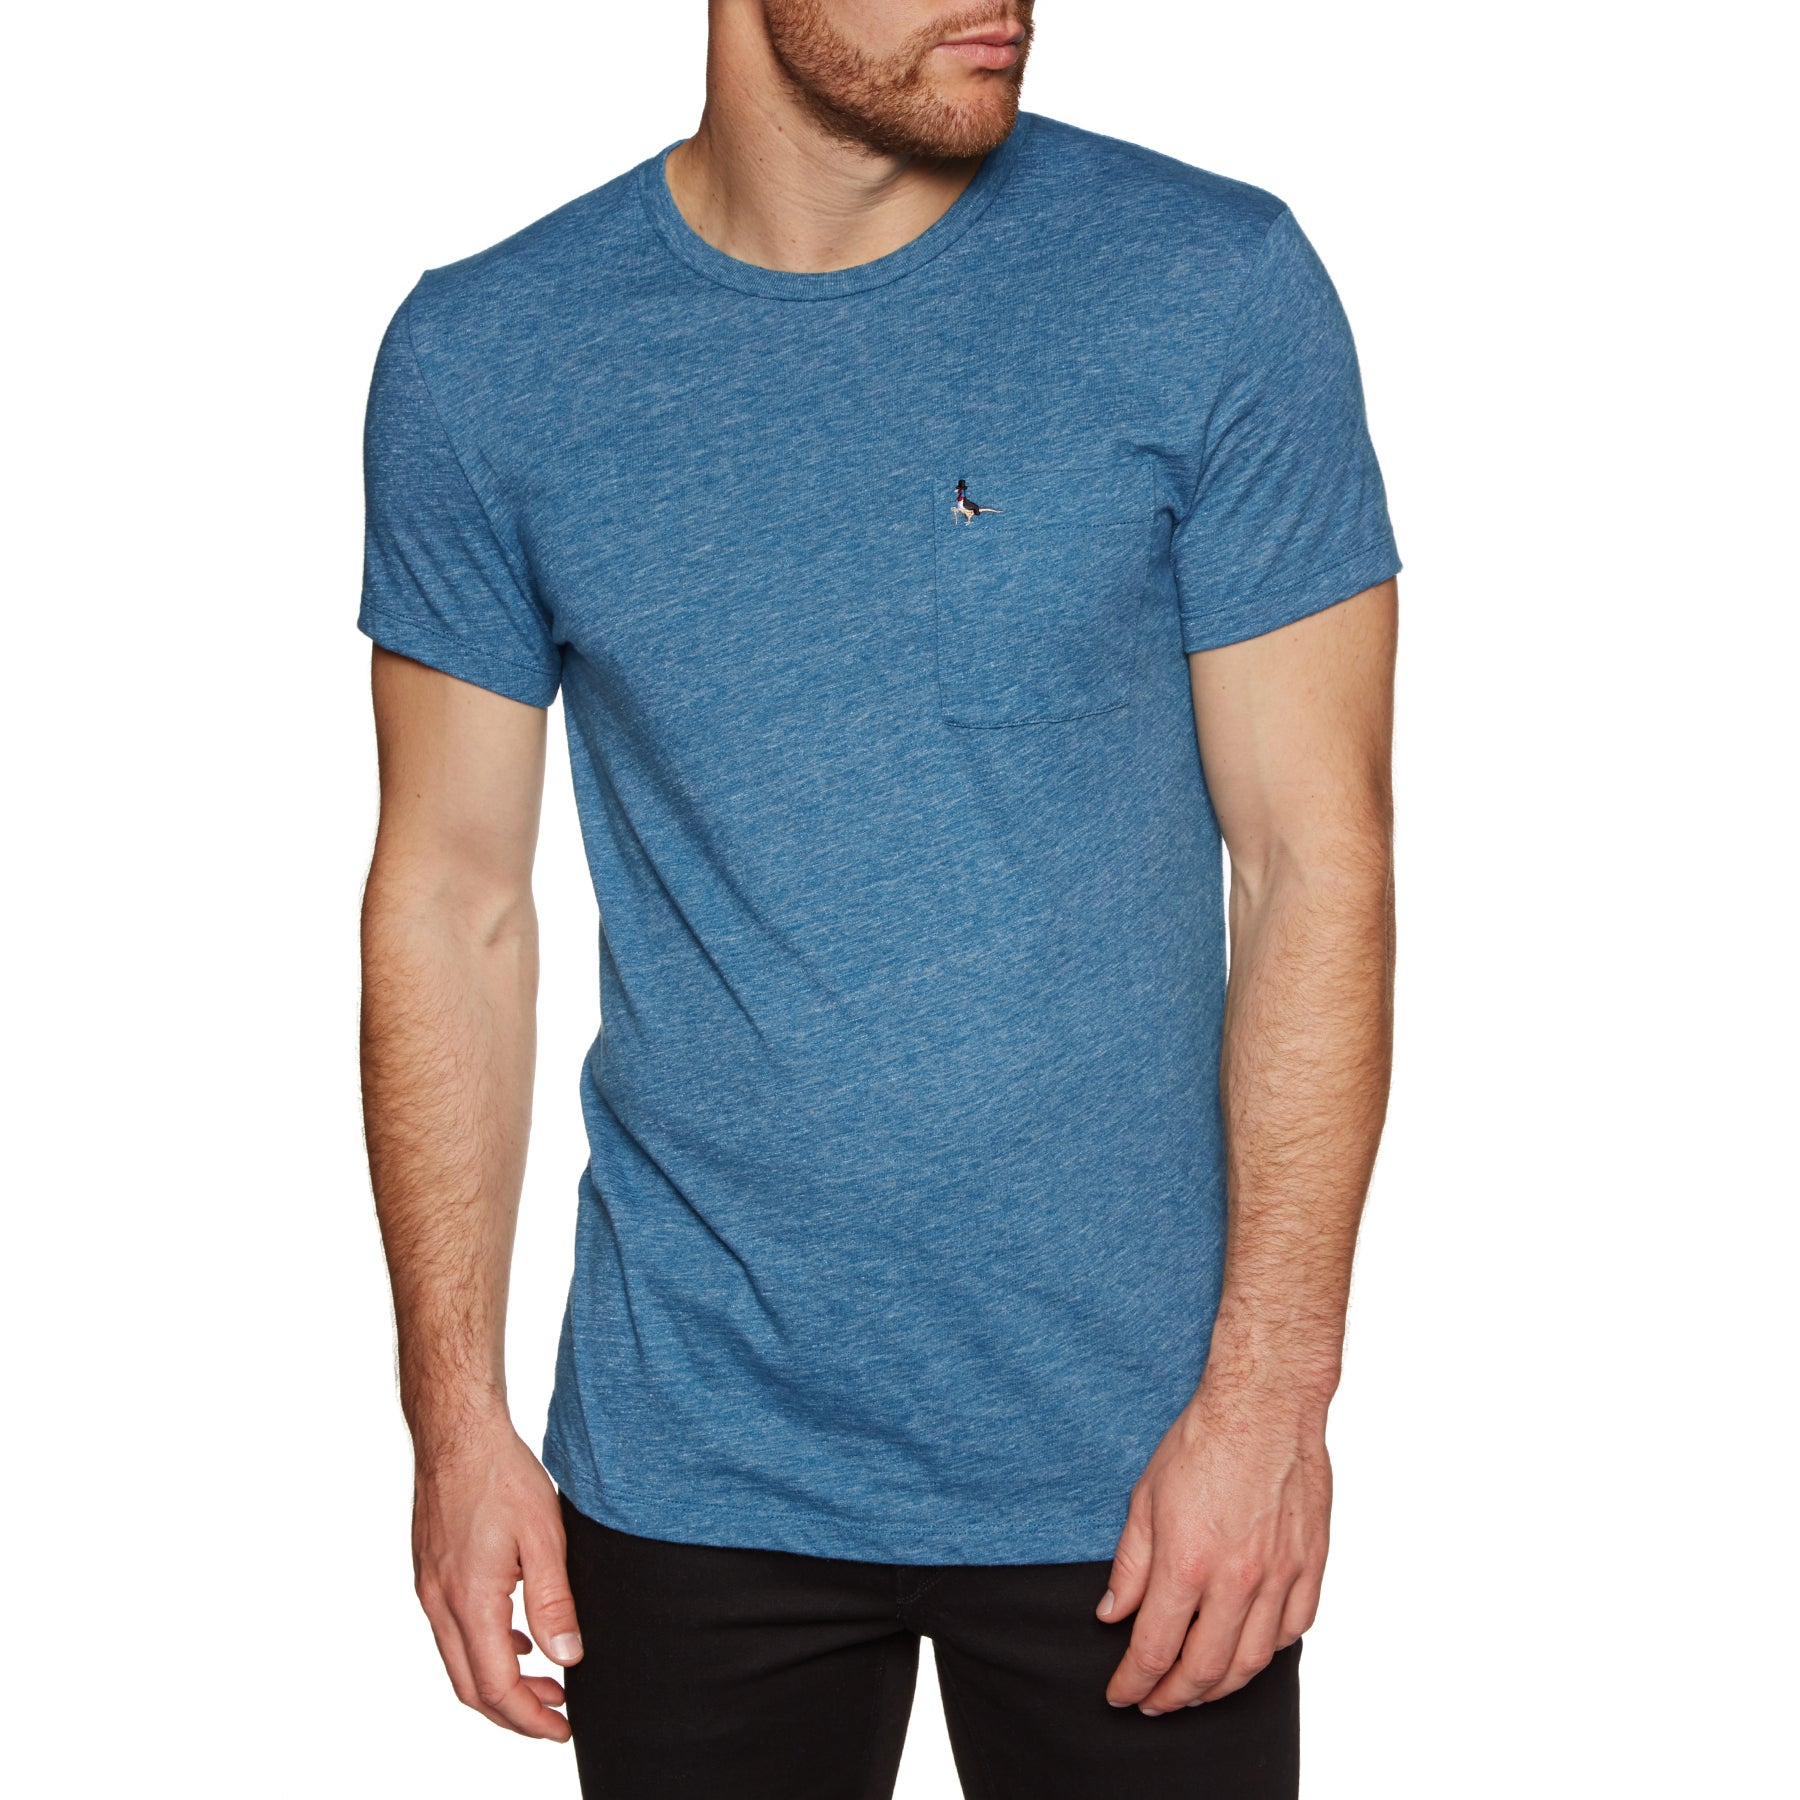 Jack Wills Ayleford Short Sleeve T-Shirt - Marine